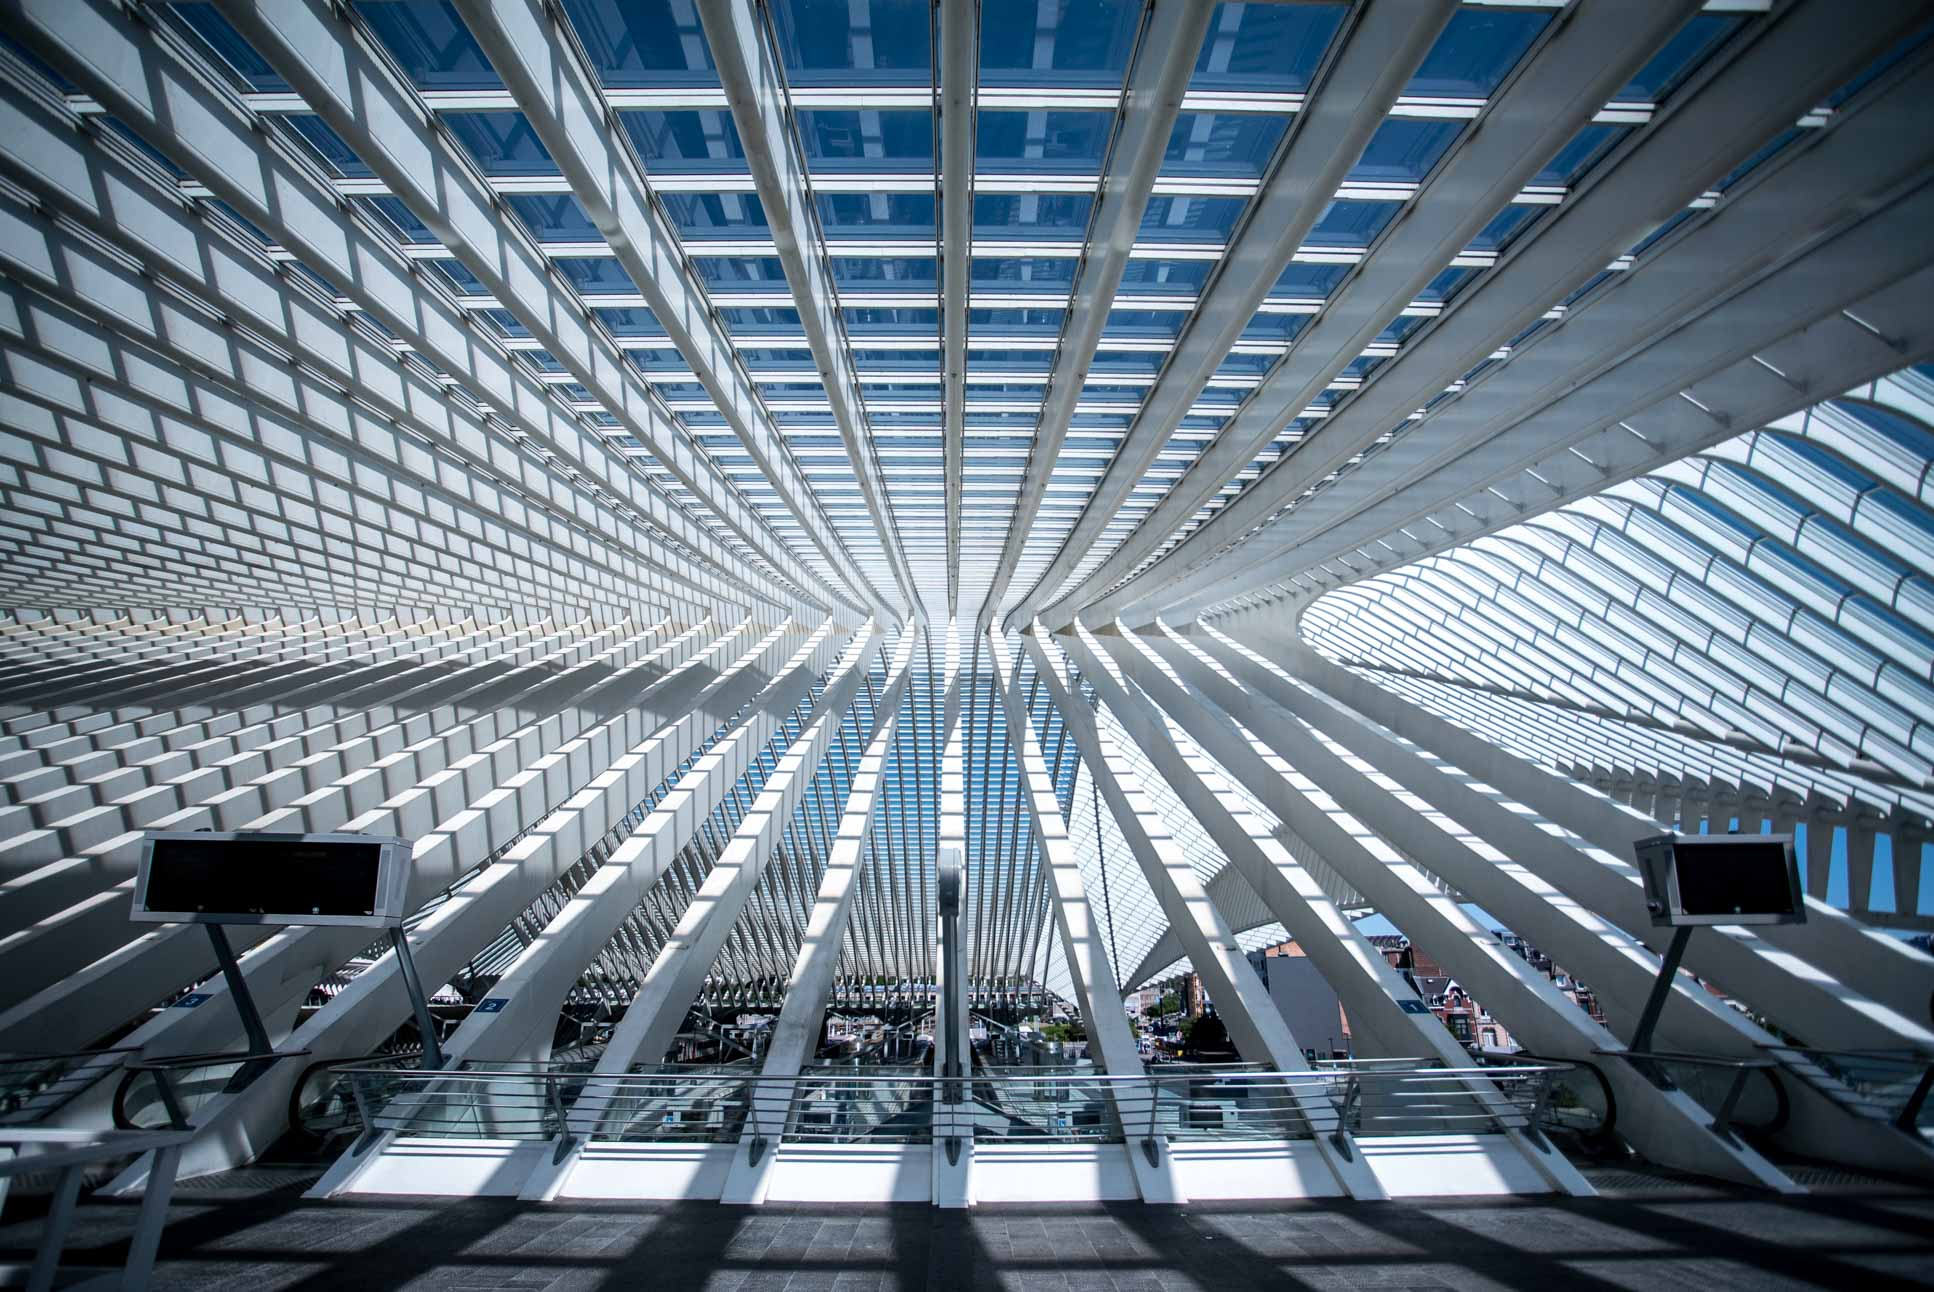 """Liège Train Station is now officially rank 2 on my personal """"Most Beautiful Trains Stations"""" list."""